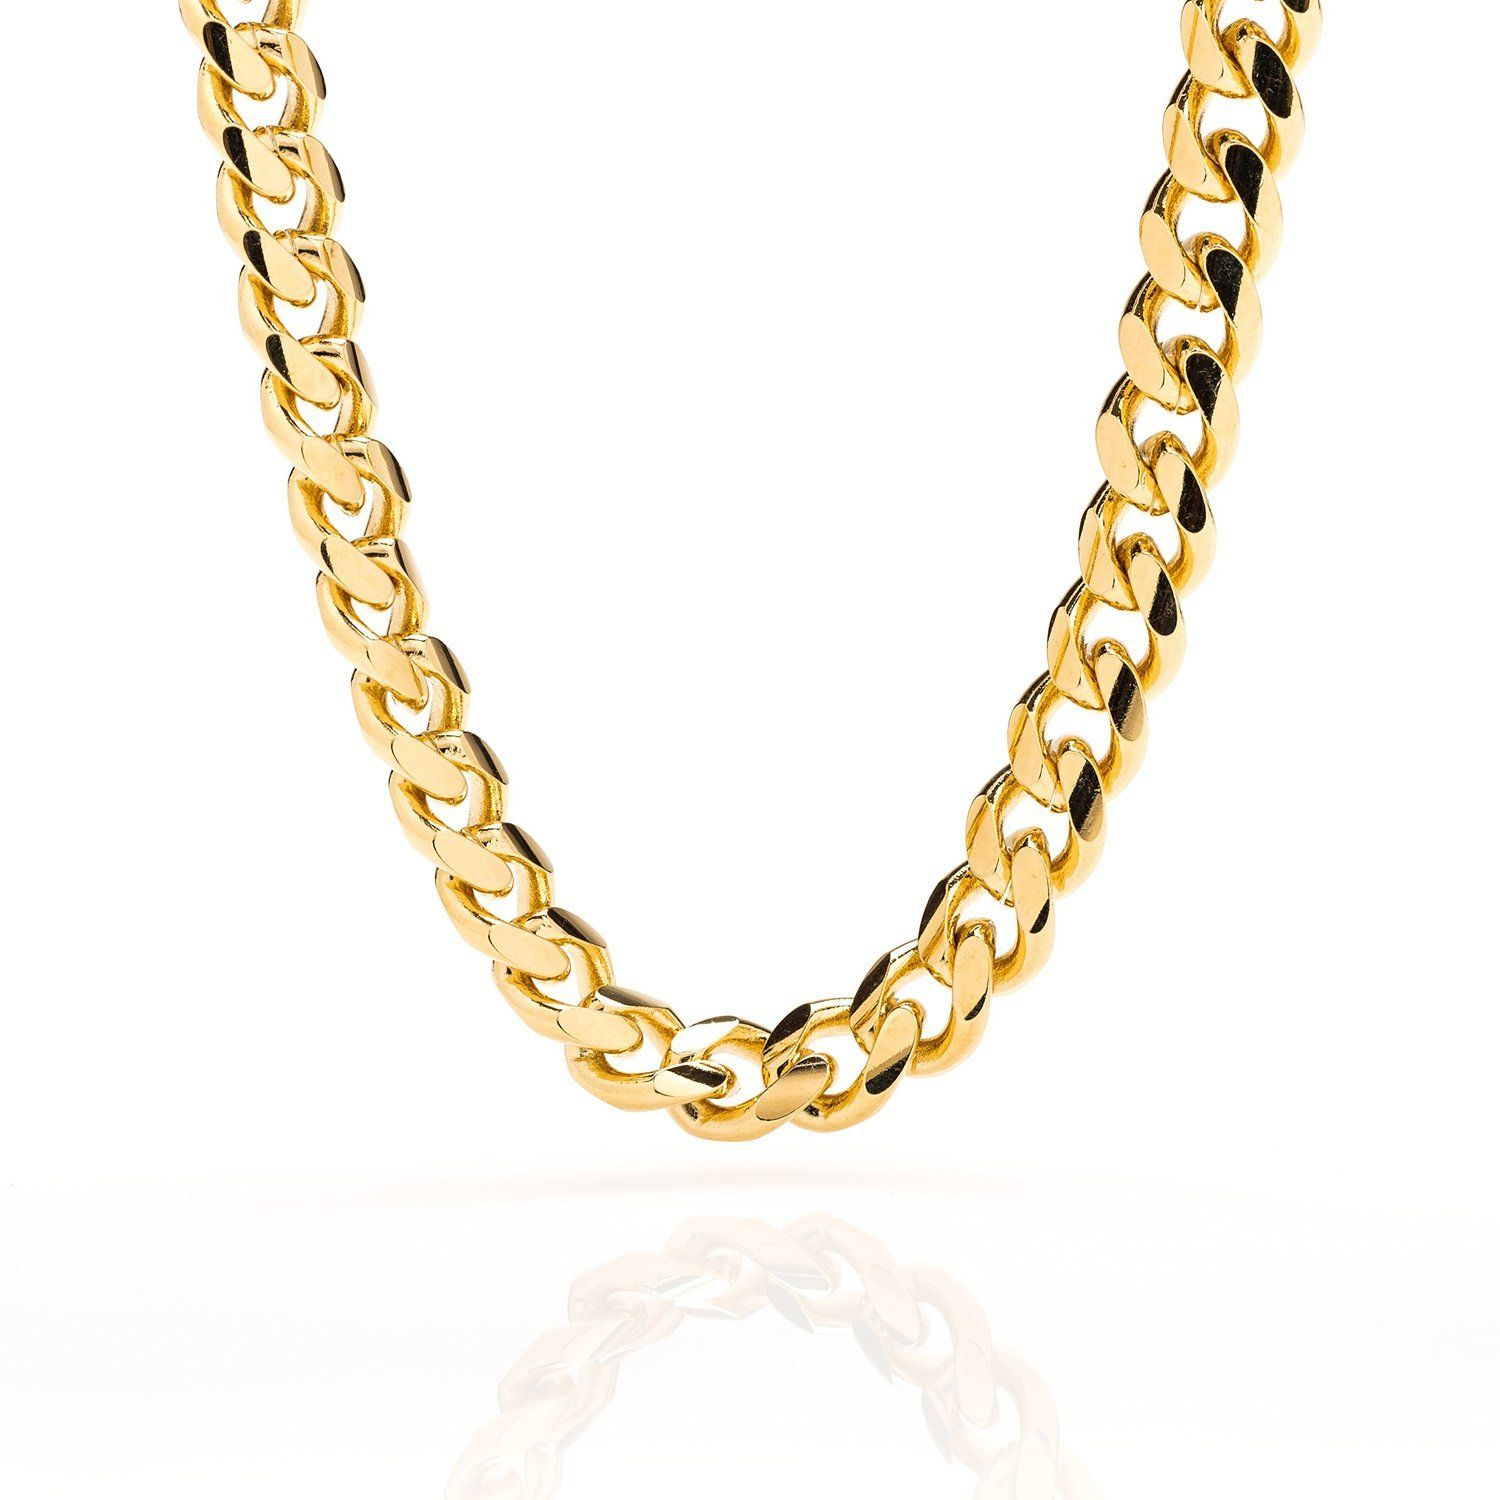 from gold rope chain womens bracelet blingfashion inches link dhgate thin com product mens classic yellow filled chains